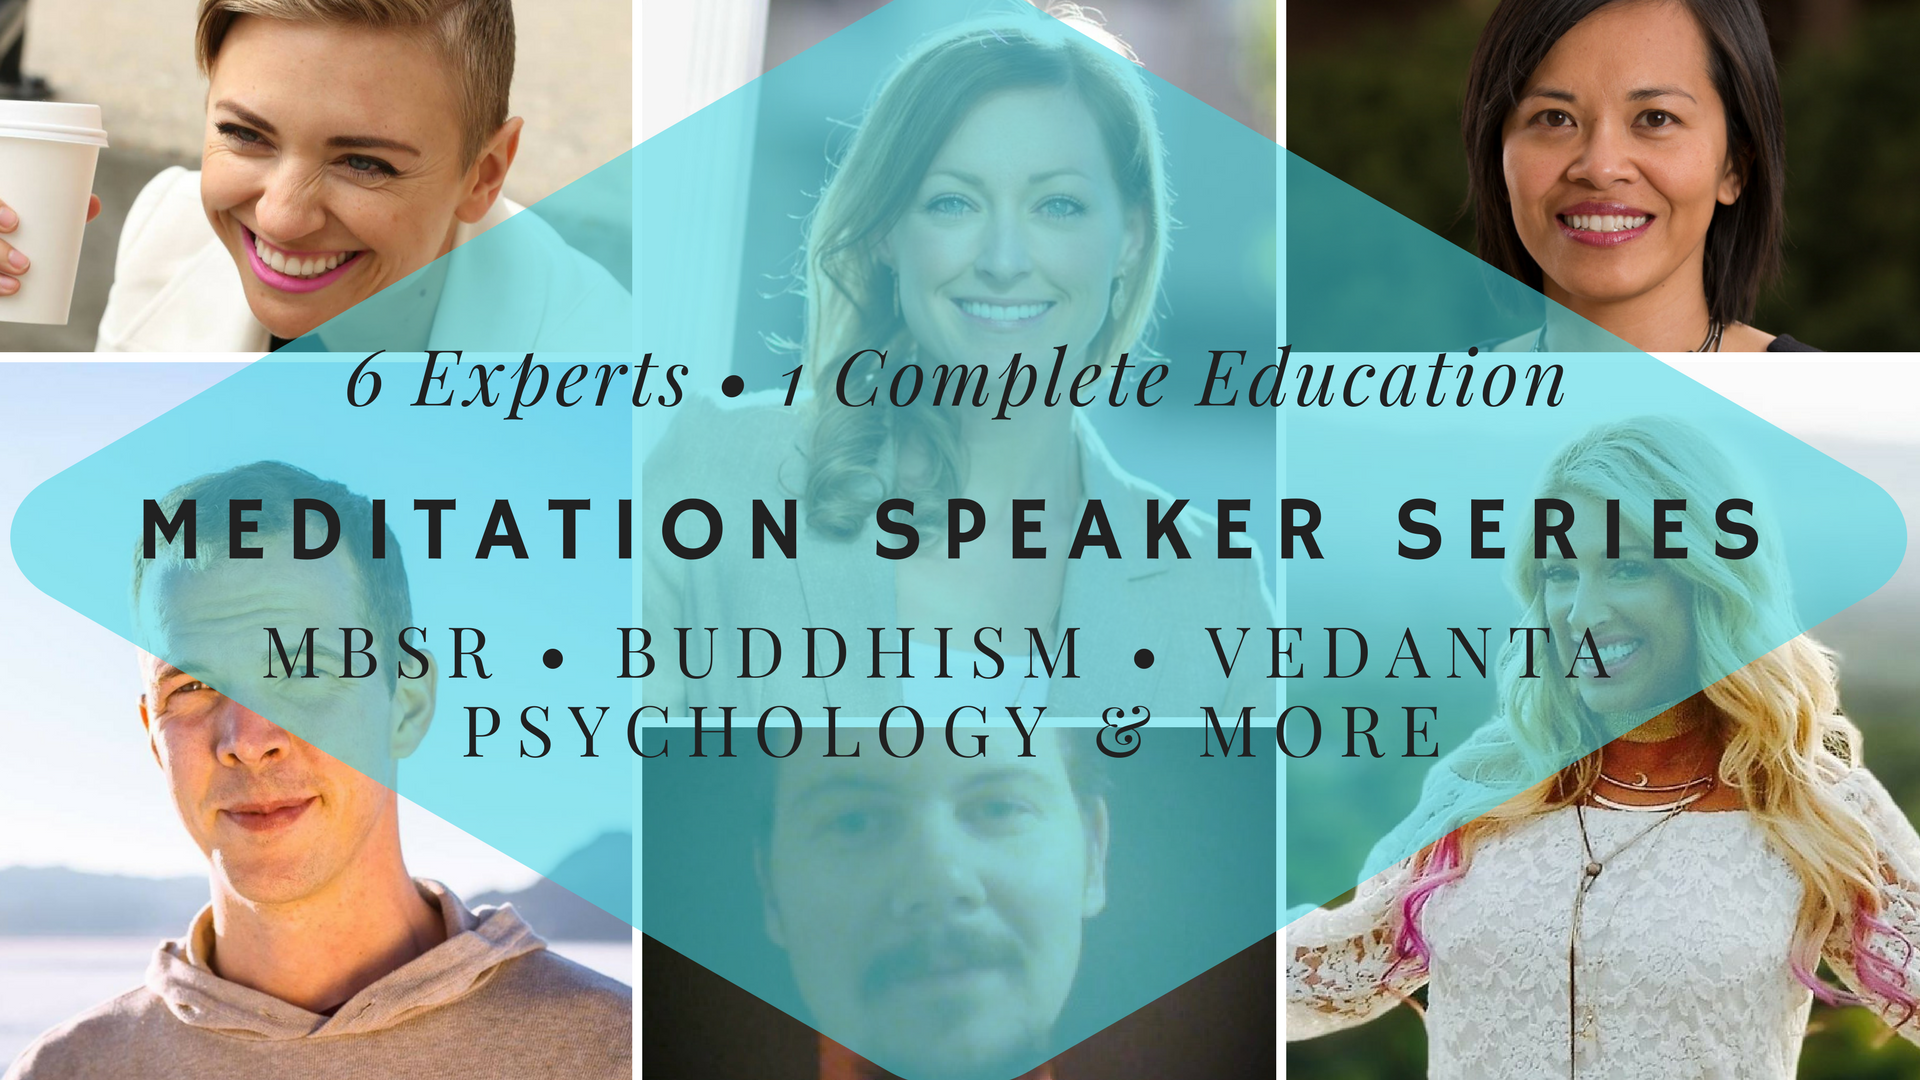 meditation speaker series ted talk amanda jones utah